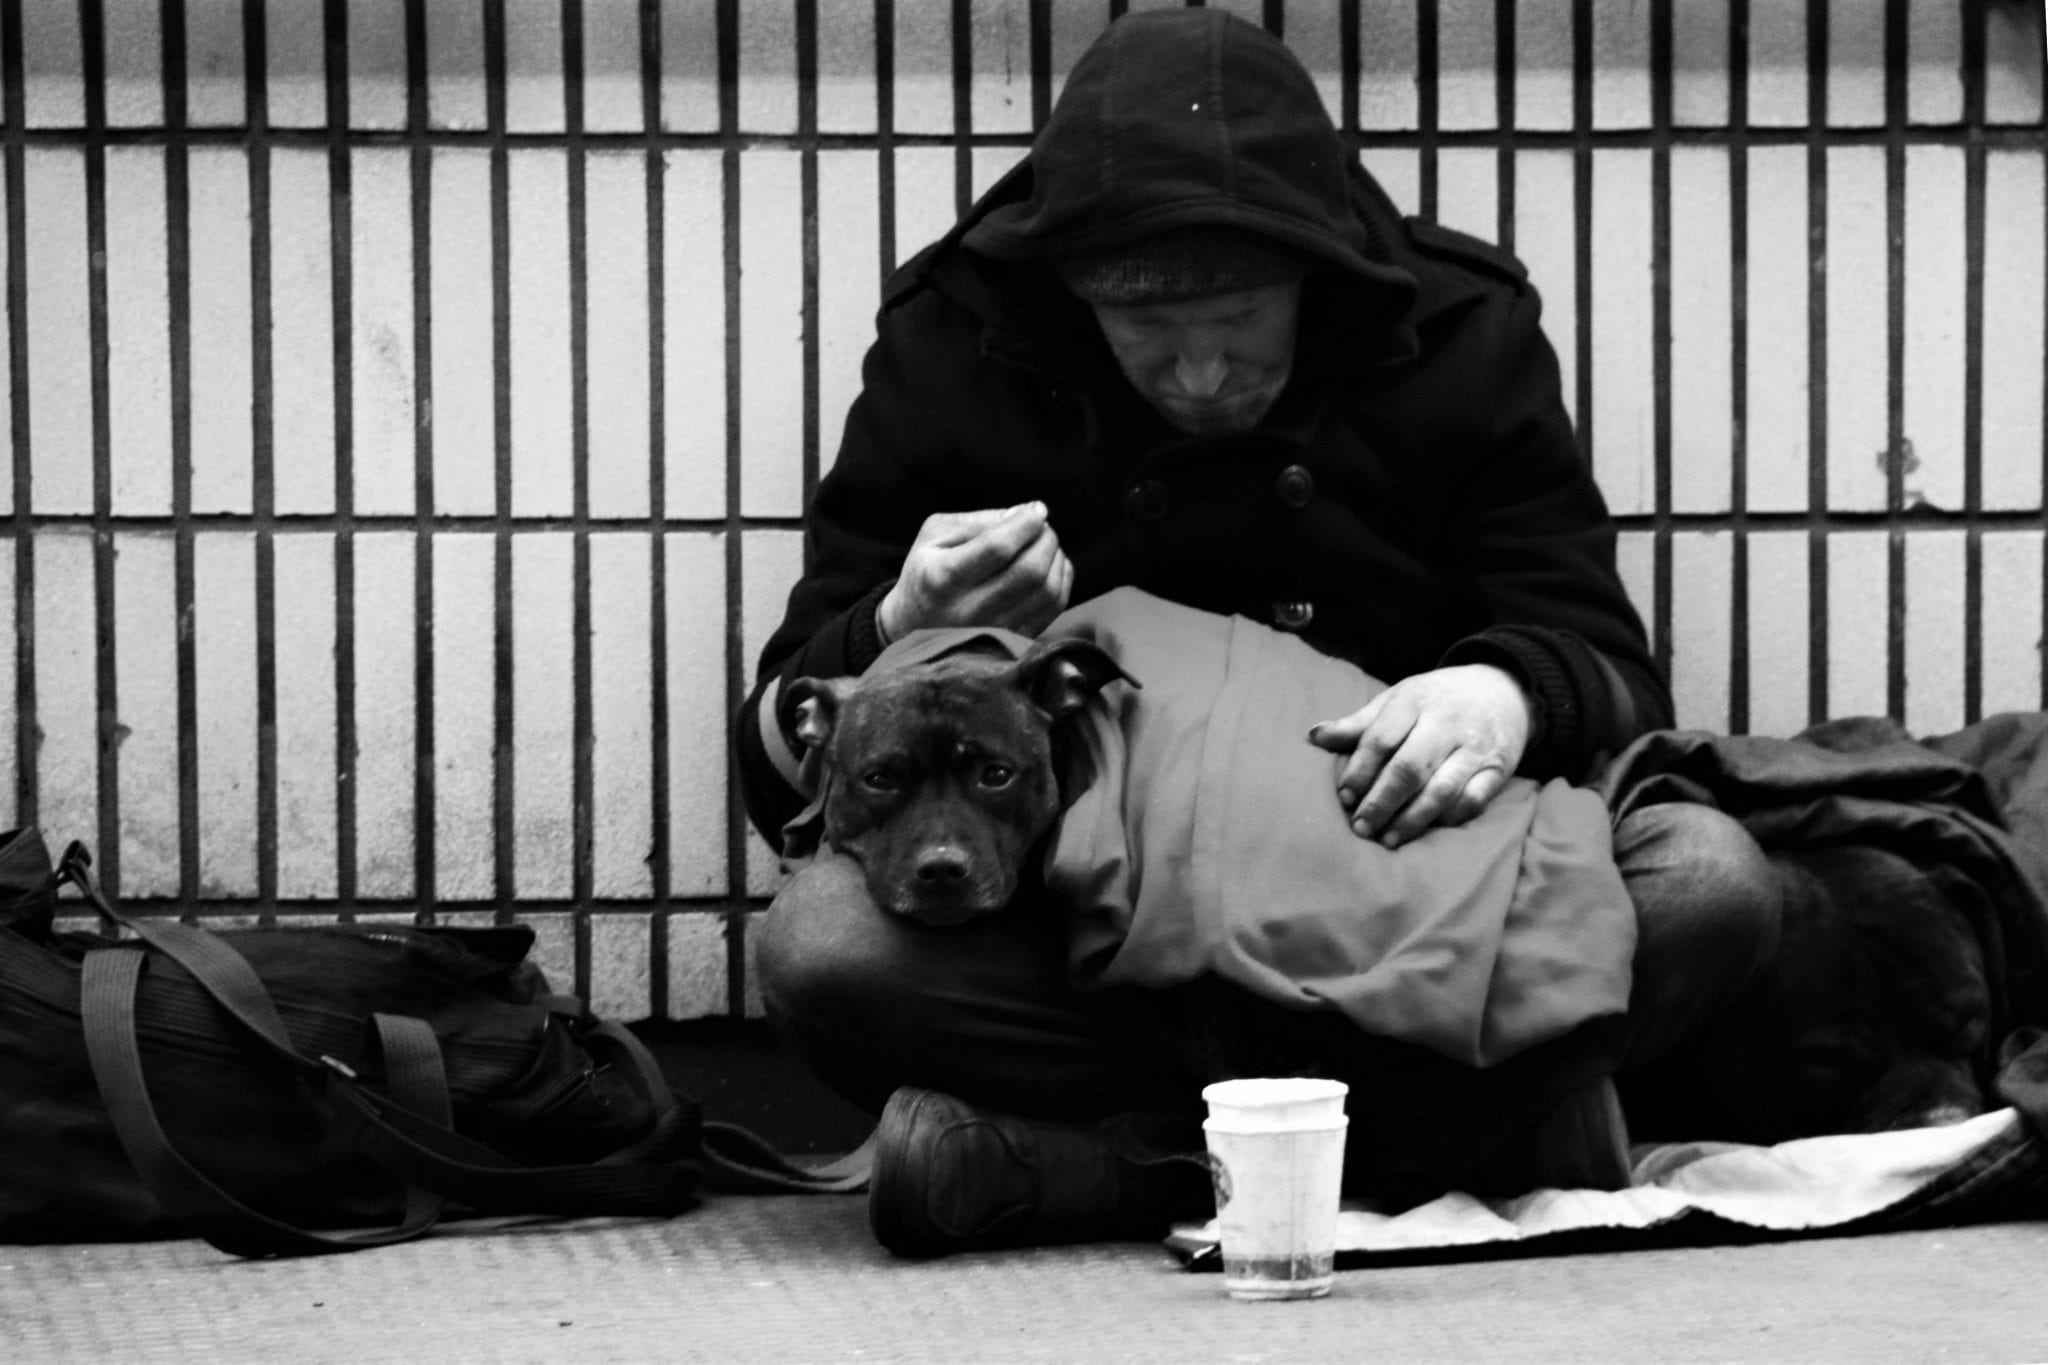 ADJOURNMENT: Homelessness in Eastern Metro